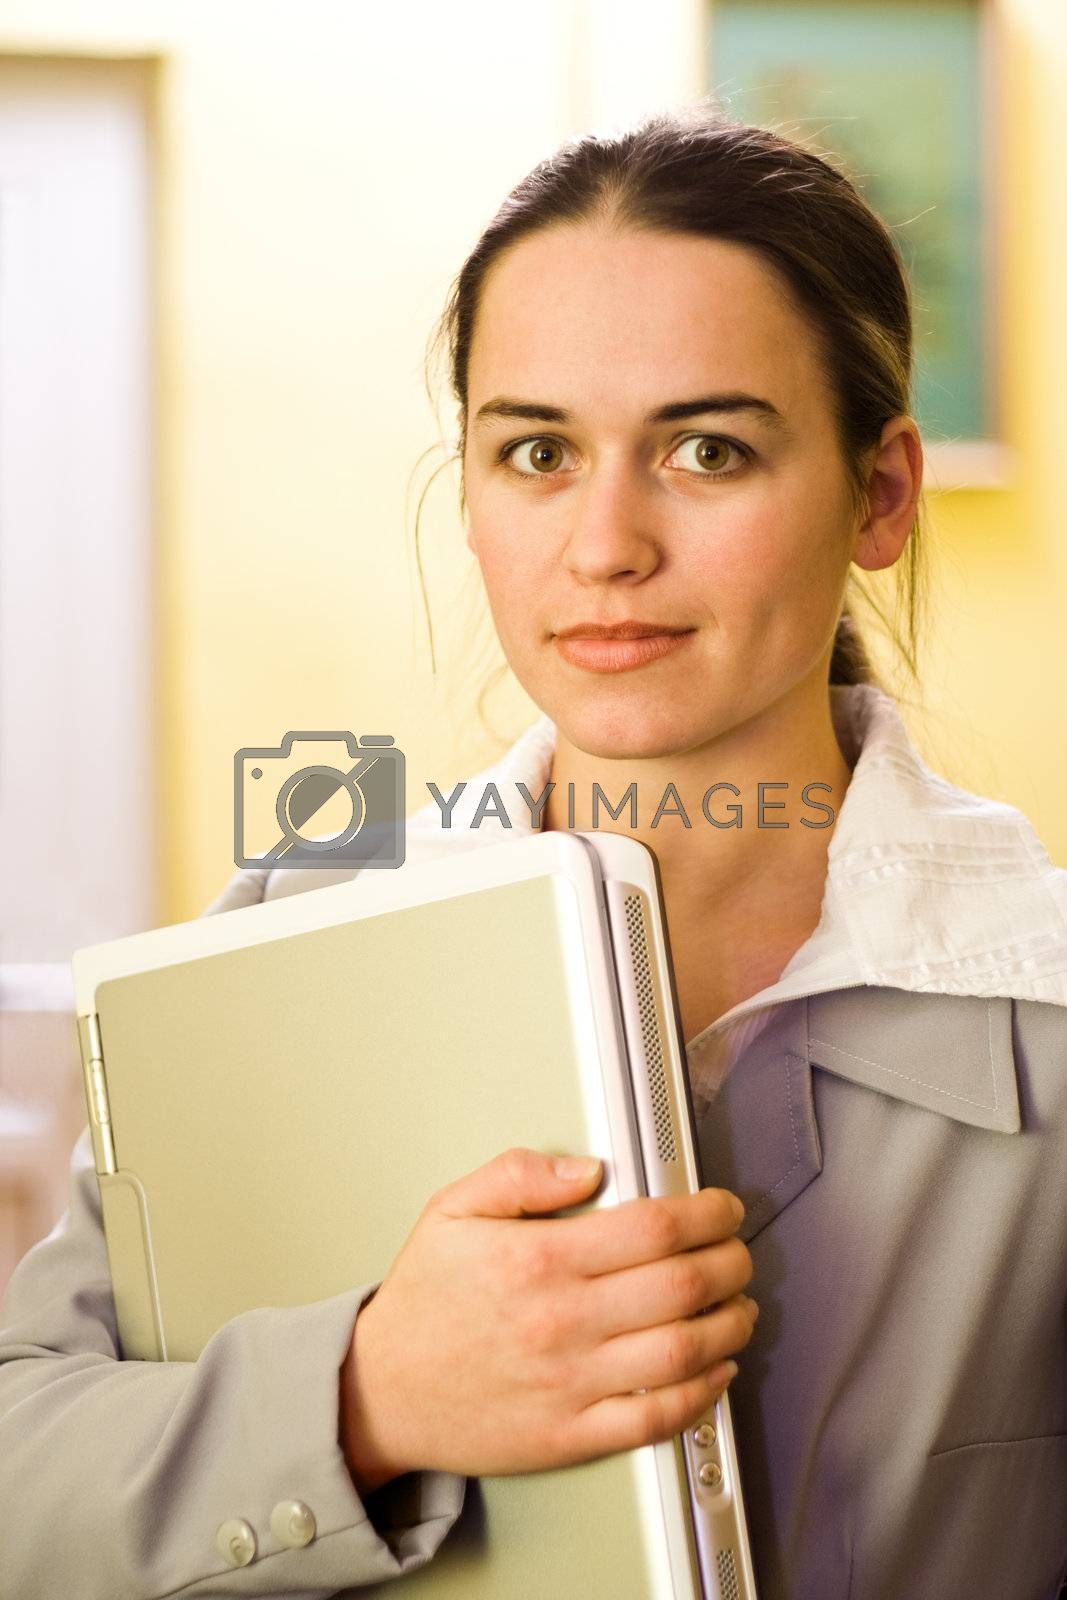 Pretty young woman with silver laptop in hand